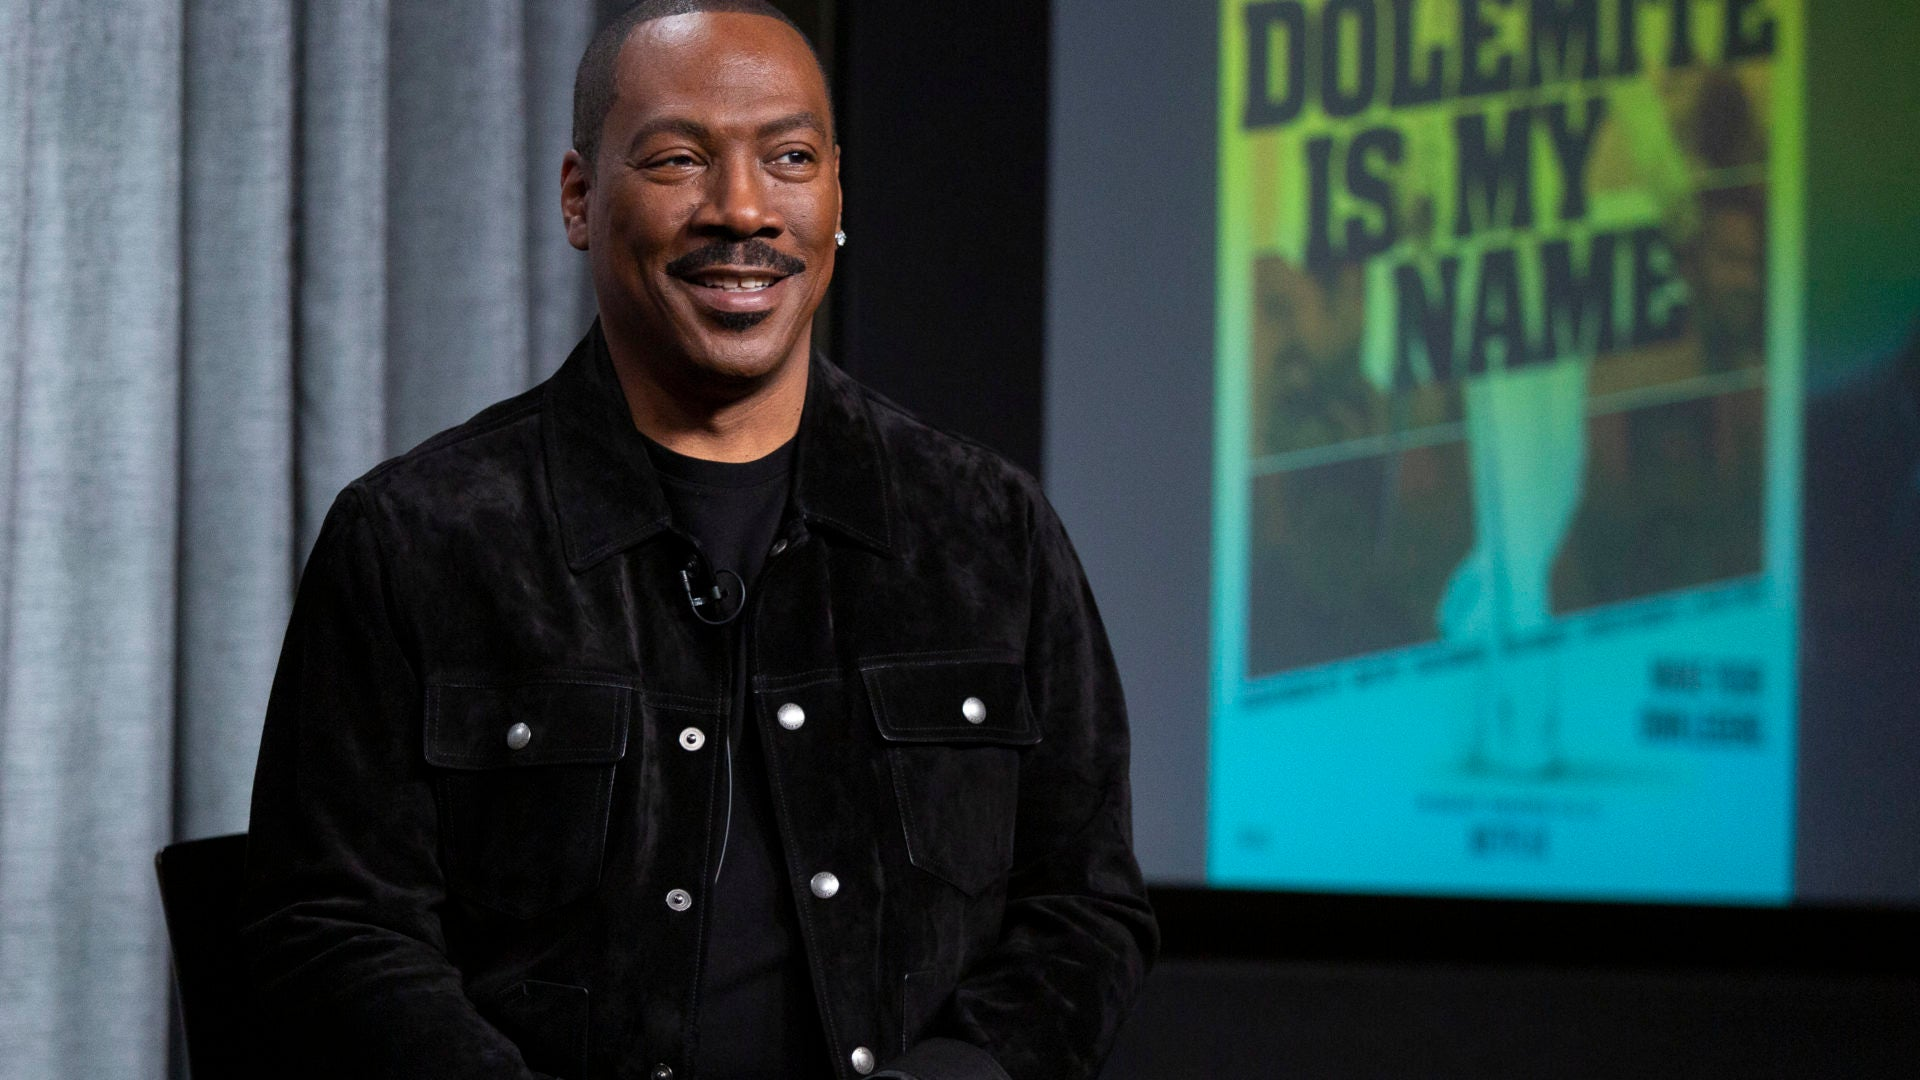 Eddie Murphy 'happy' to have 10 kids, brags women find it 'sexy'